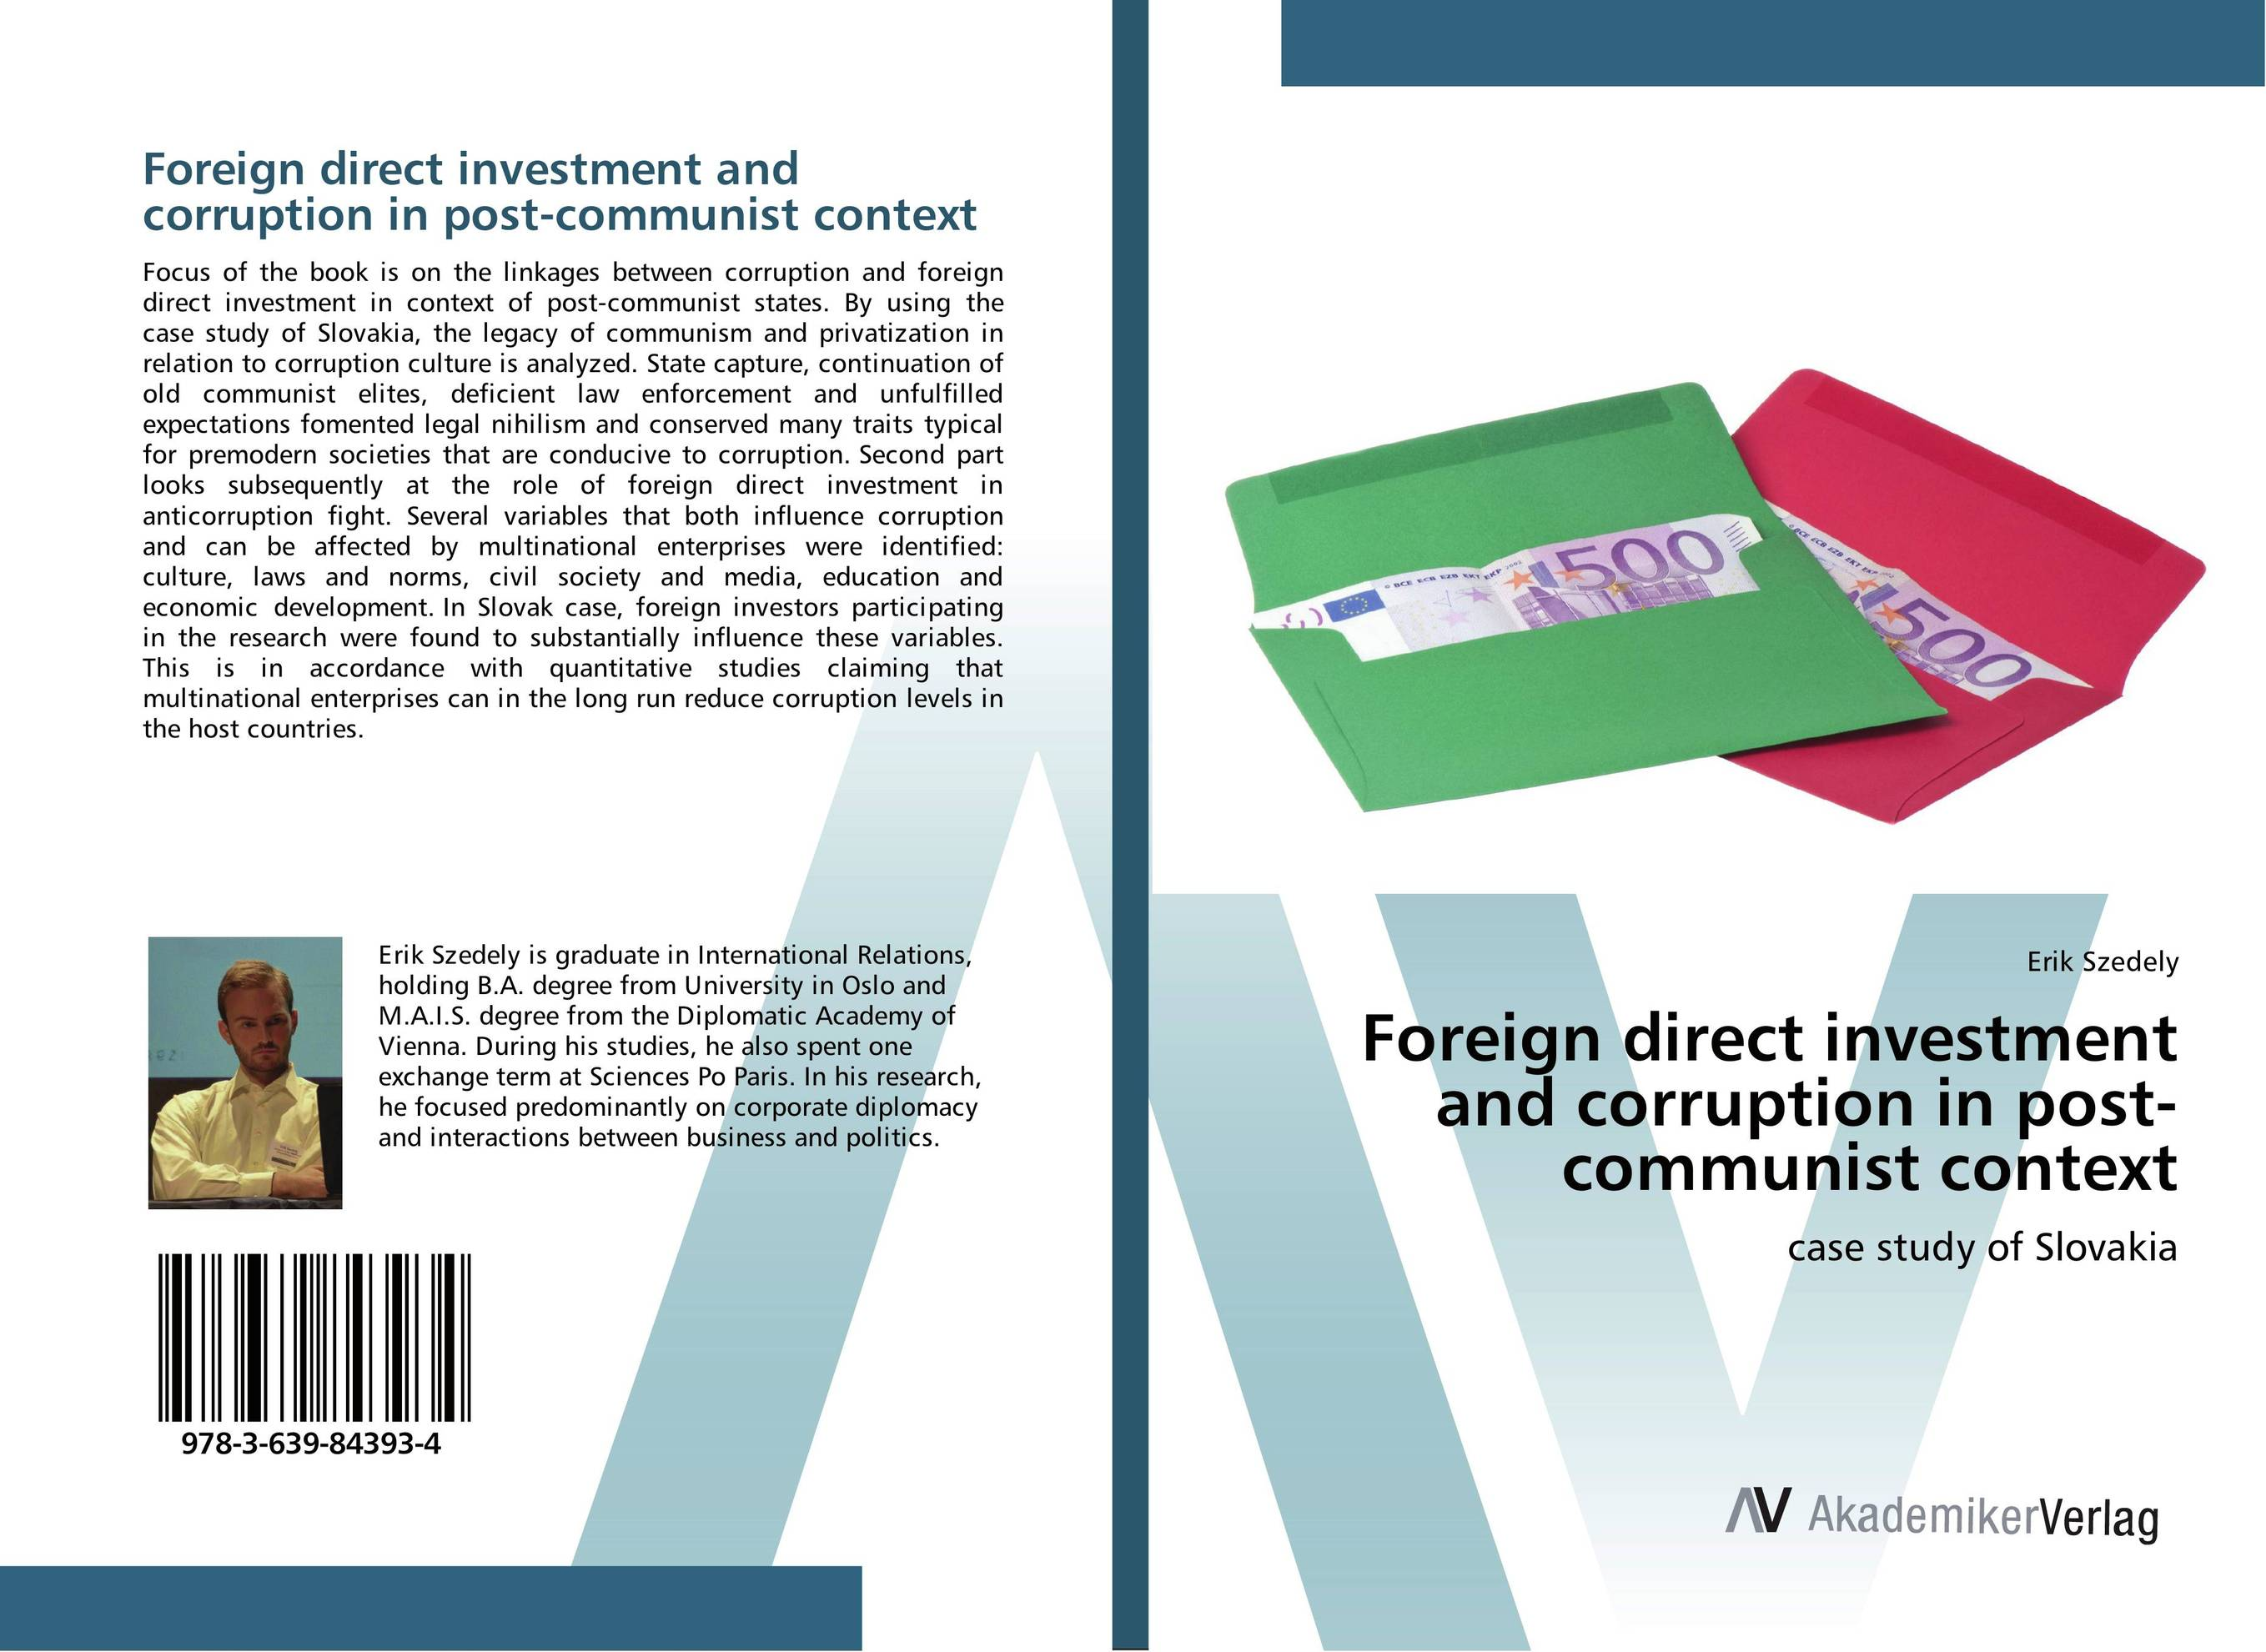 Foreign direct investment and corruption in post-communist context joshua nimako foreign direct investment laws